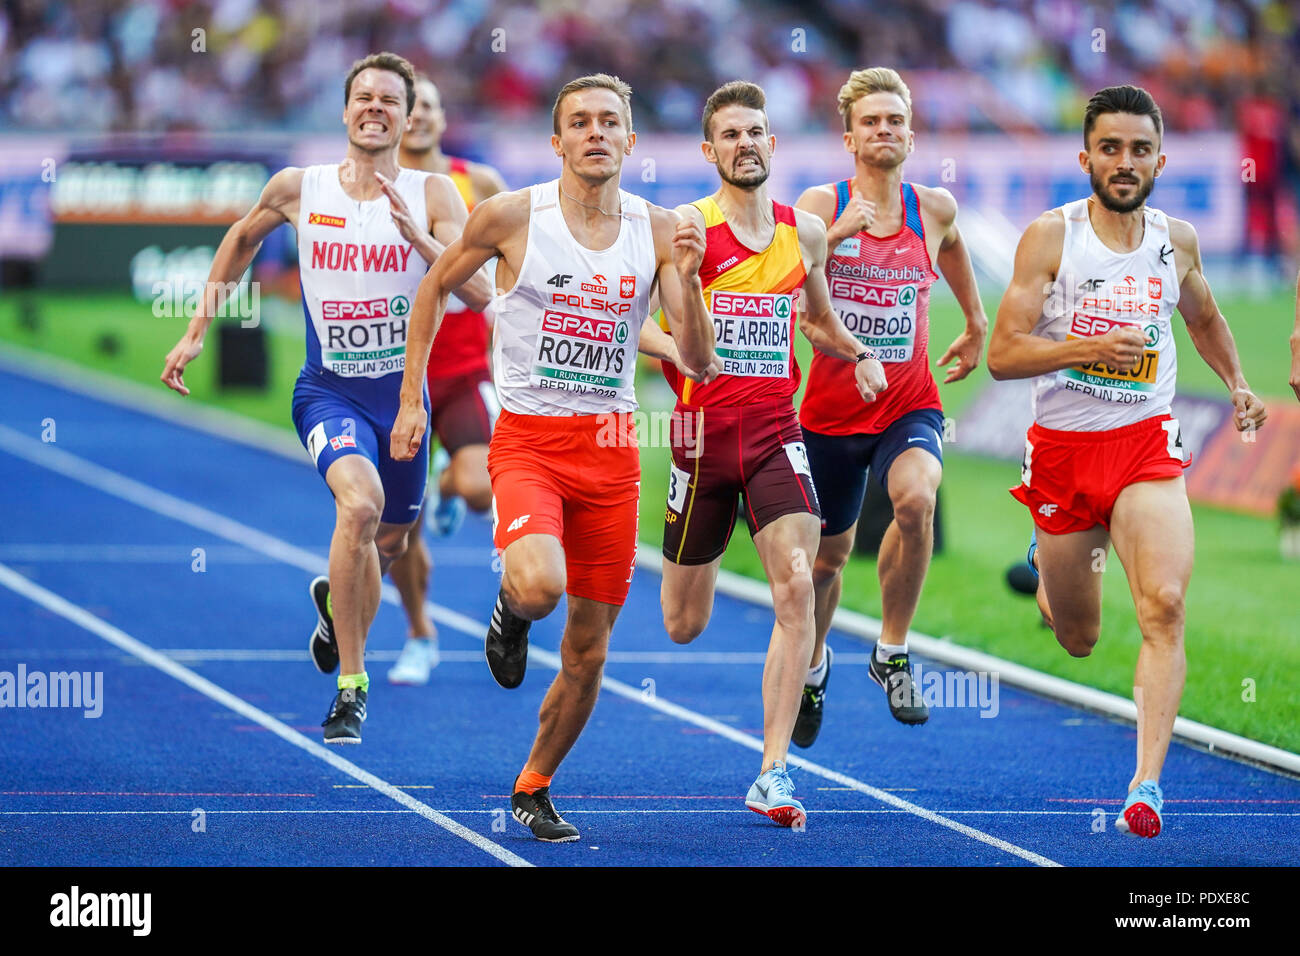 Berlin, Germany. August 10, 2018: Adam Kszczot of  Poland and Rozmys of  Poland ending up as number one and two in the 800 meter semi-final for men at the Olympic Stadium in Berlin at the European Athletics Championship. Ulrik Pedersen/CSM Credit: Cal Sport Media/Alamy Live News - Stock Image